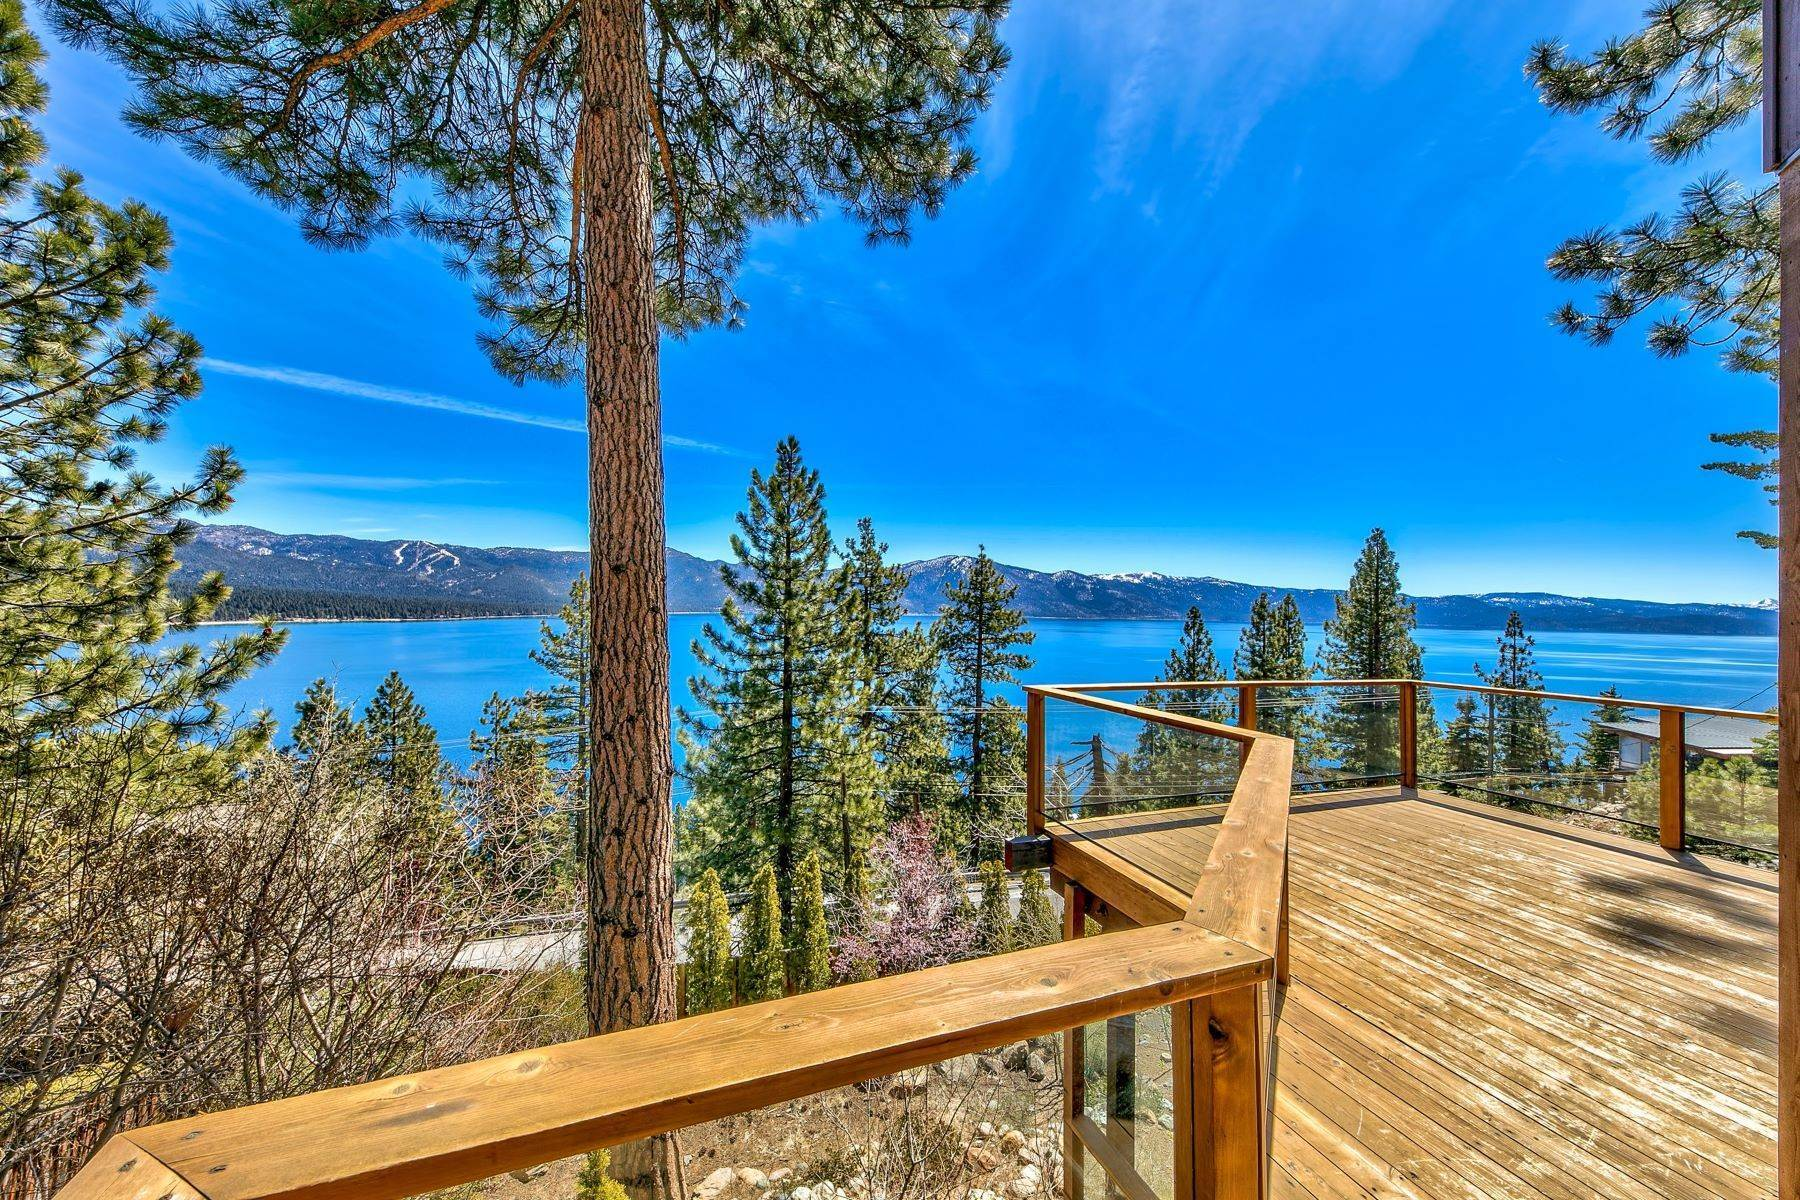 Single Family Homes for Active at Crystal Bay Cabin & Panoramic Views 370 Wassou Rd Crystal Bay, Nevada 89402 United States